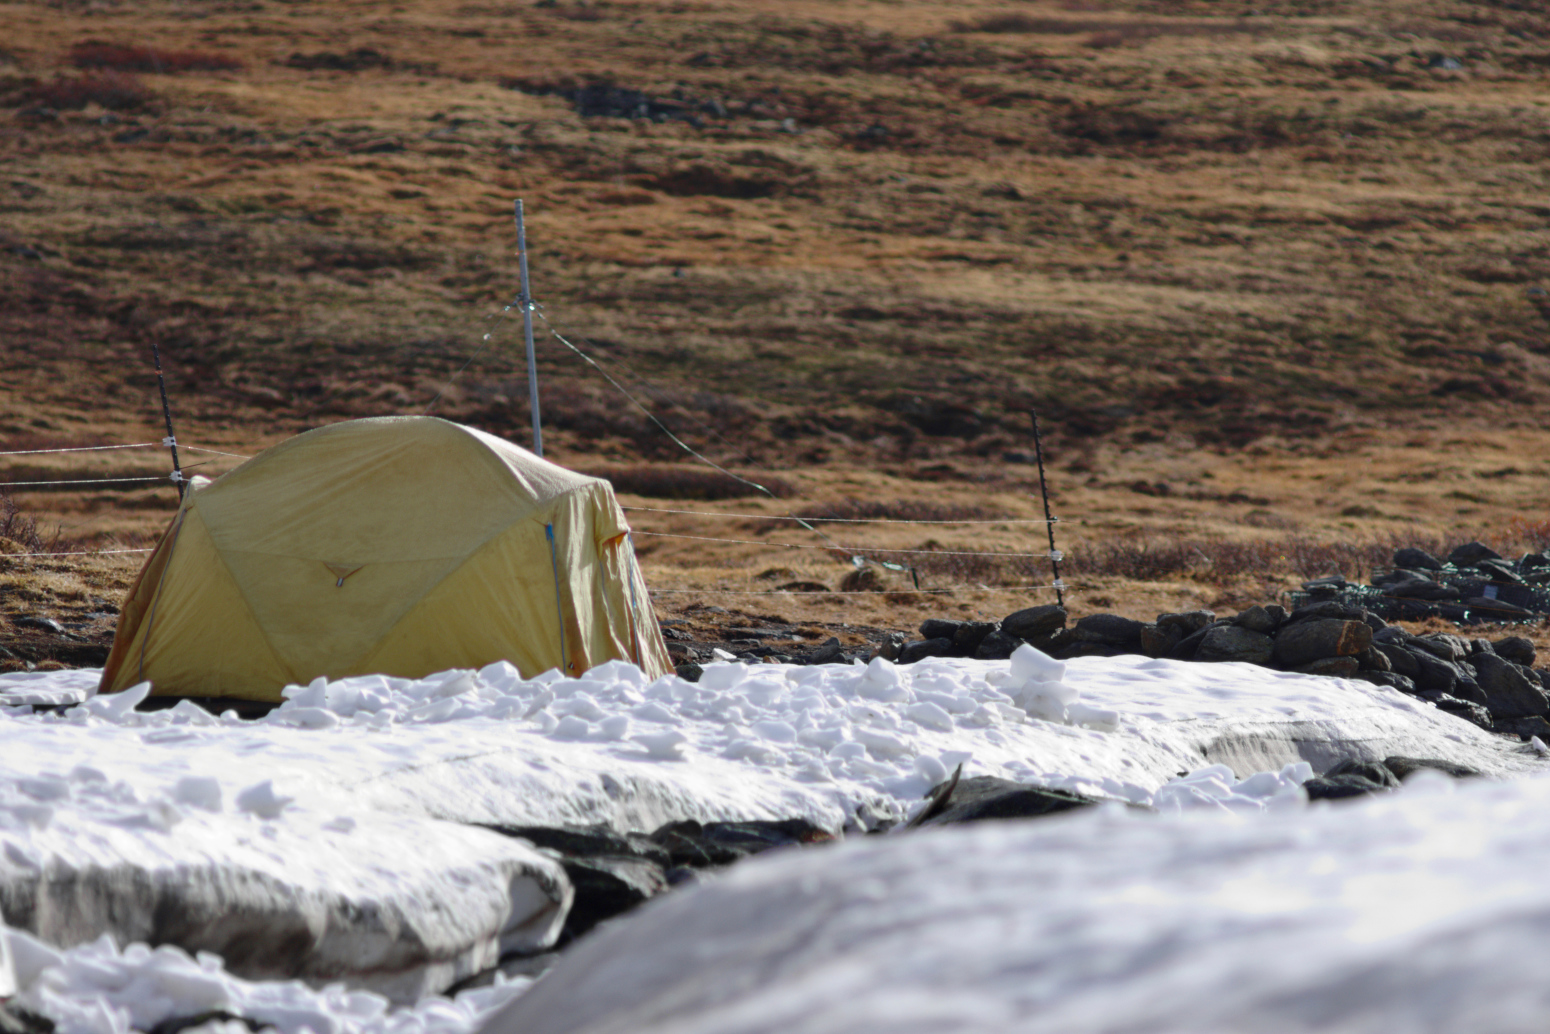 A tent set up with the tundra behind and a snowy creekbed in front.